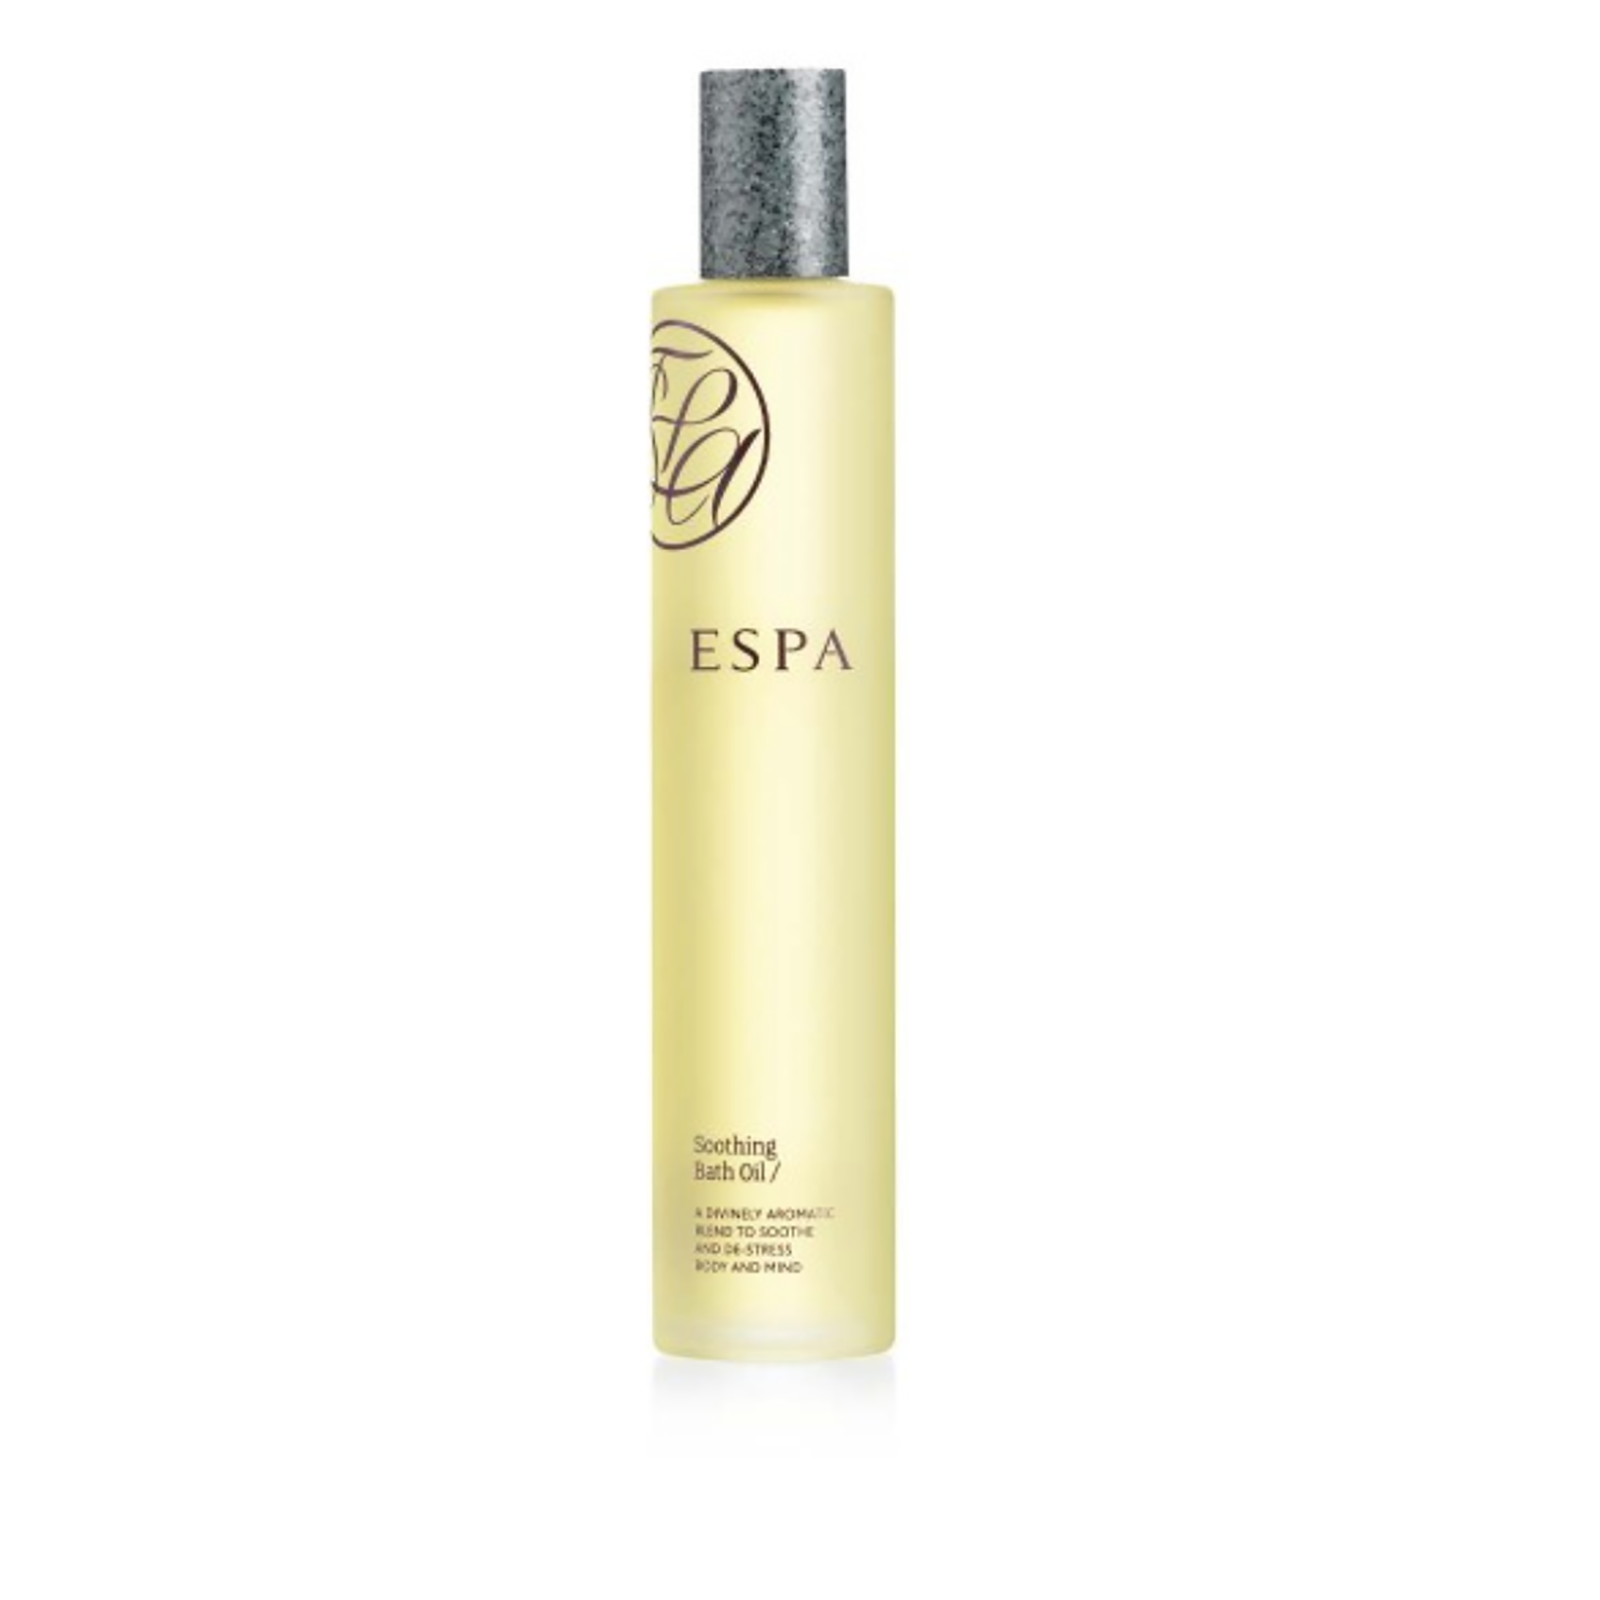 ESPA Soothing Bath Oil (200ml)